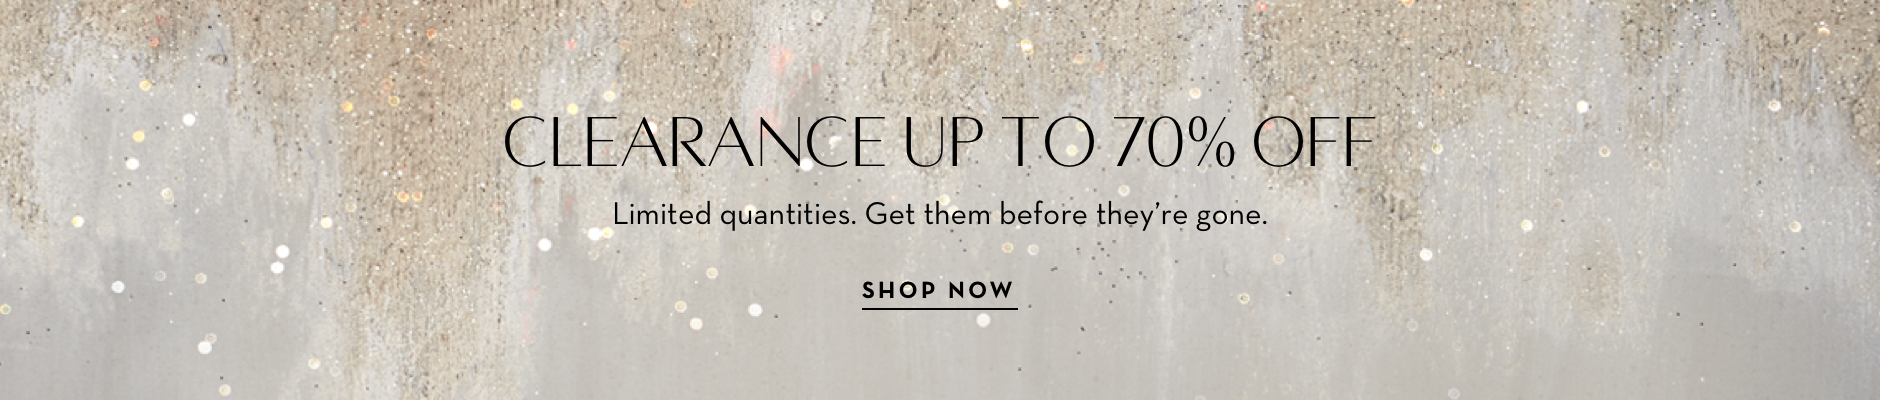 Up to 70% off Sale - Limited Time